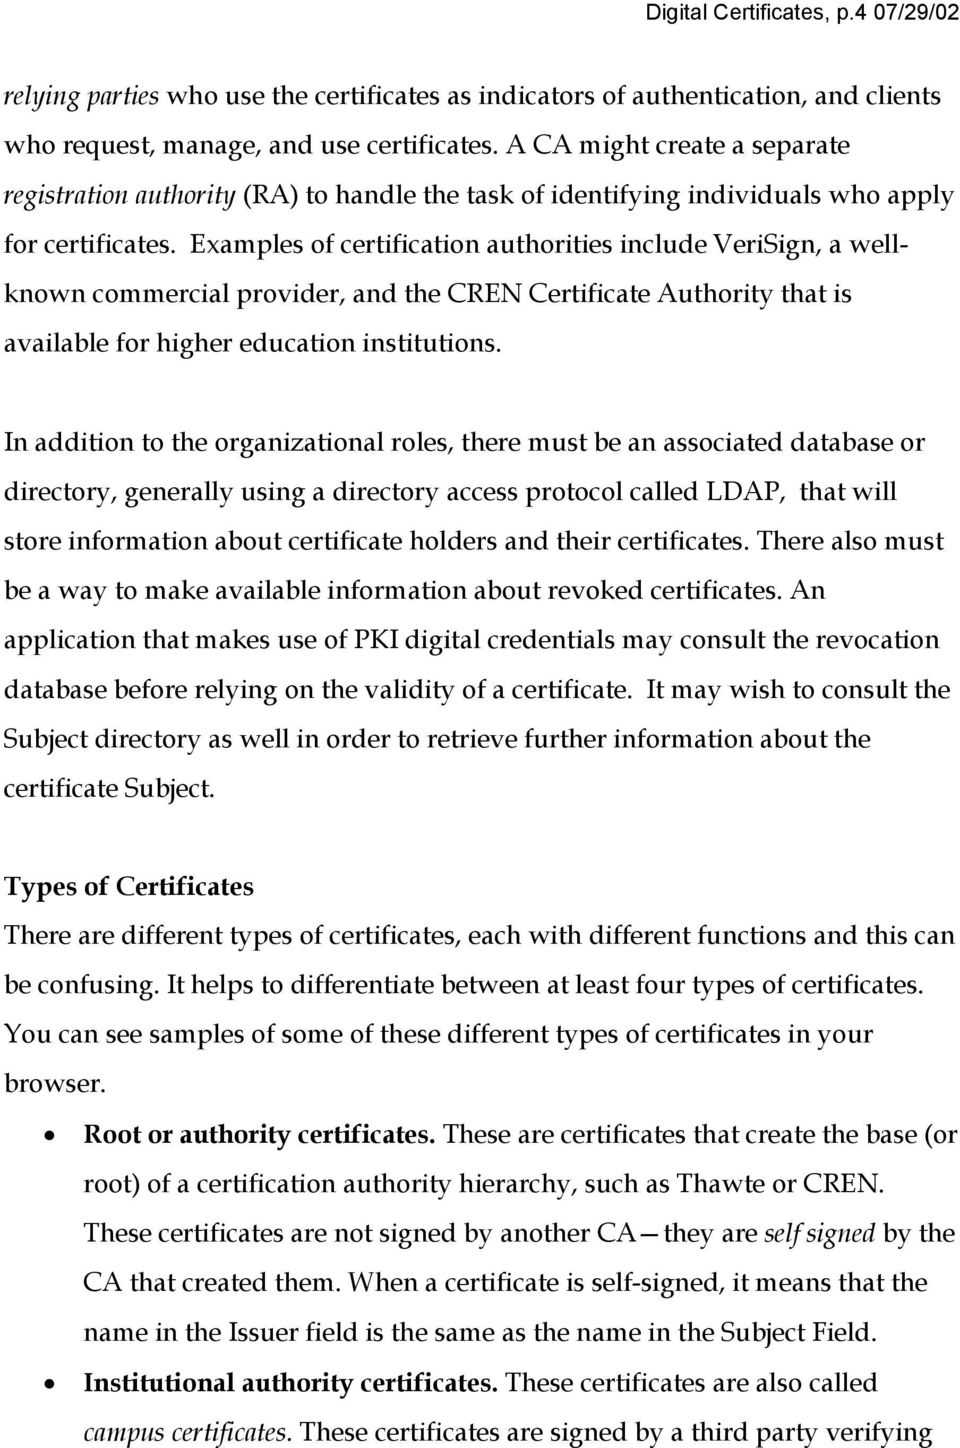 Examples of certification authorities include VeriSign, a wellknown commercial provider, and the CREN Certificate Authority that is available for higher education institutions.